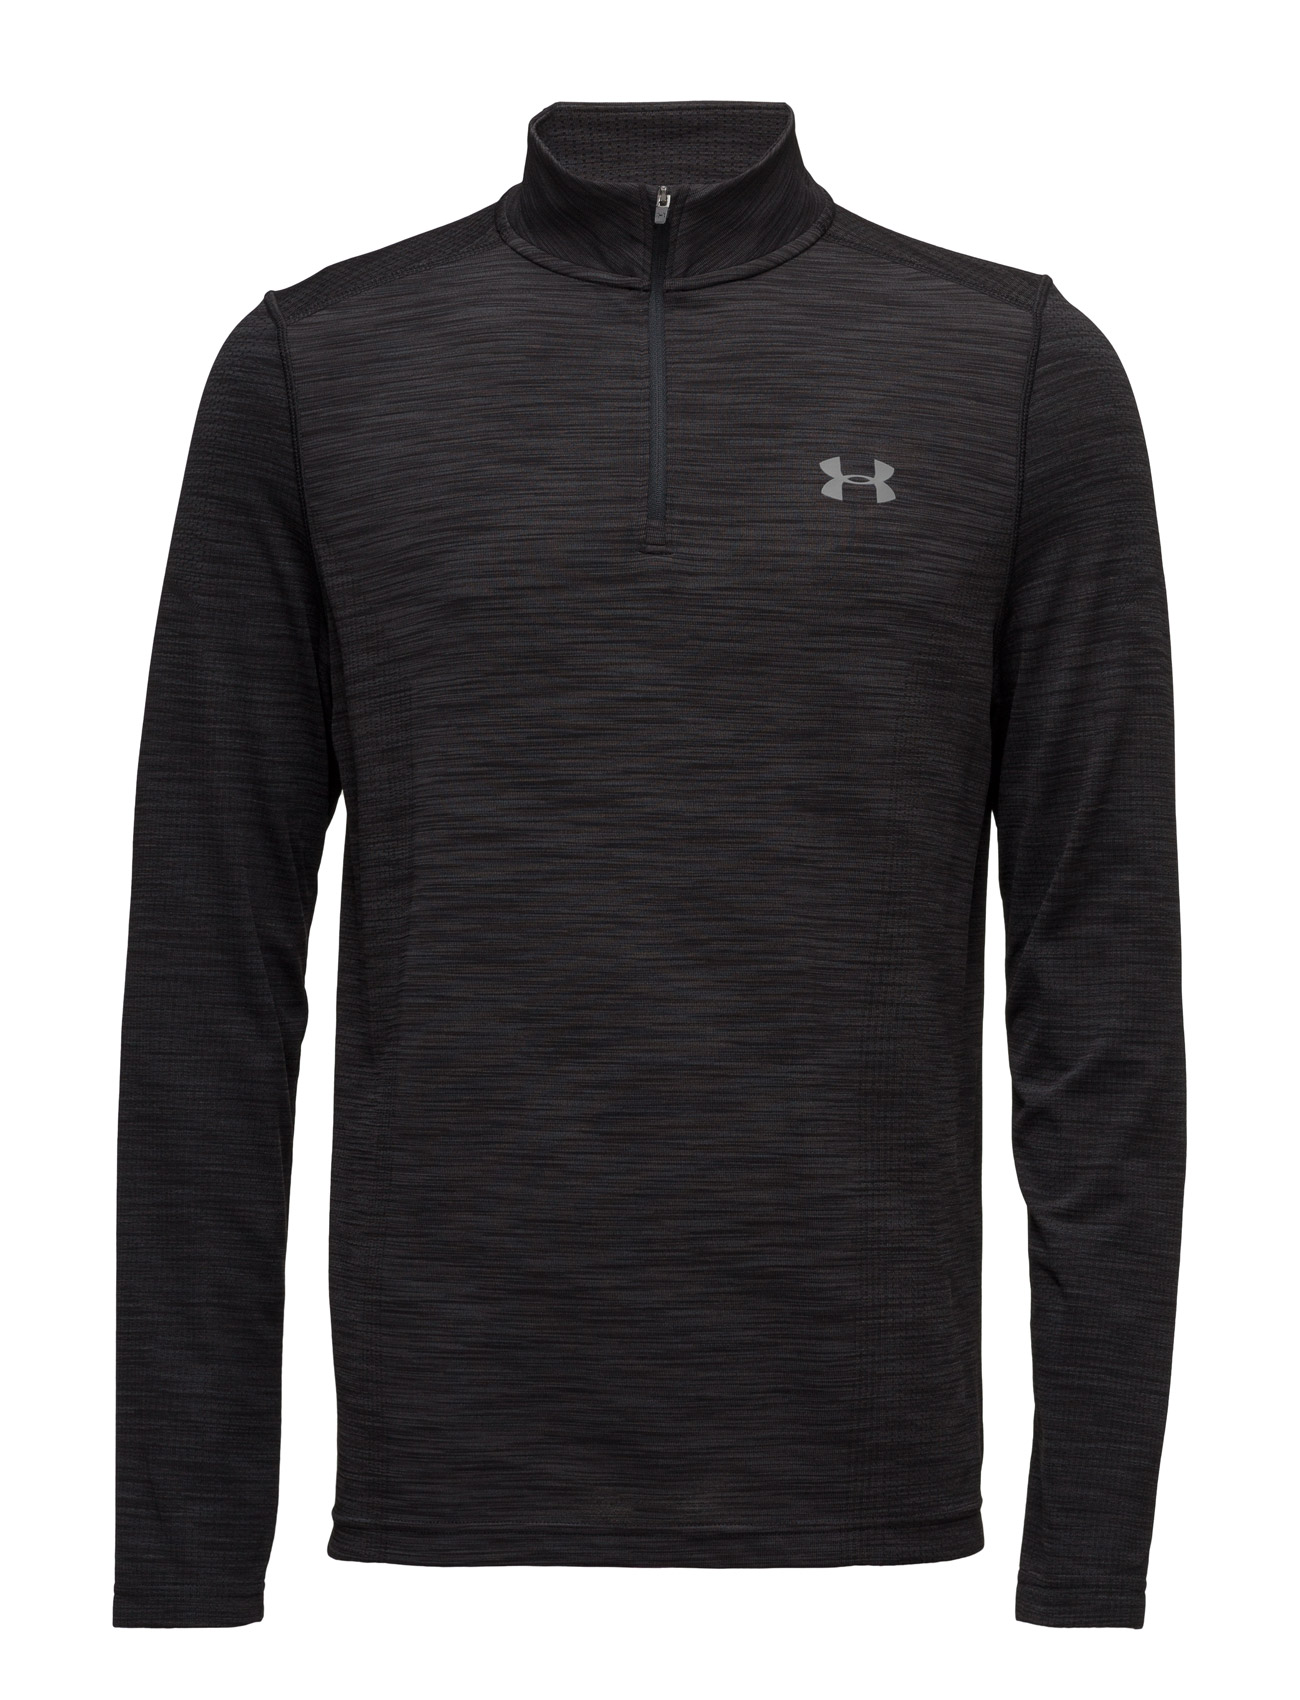 under armour – Threadborne seamless 1/4 zip på boozt.com dk